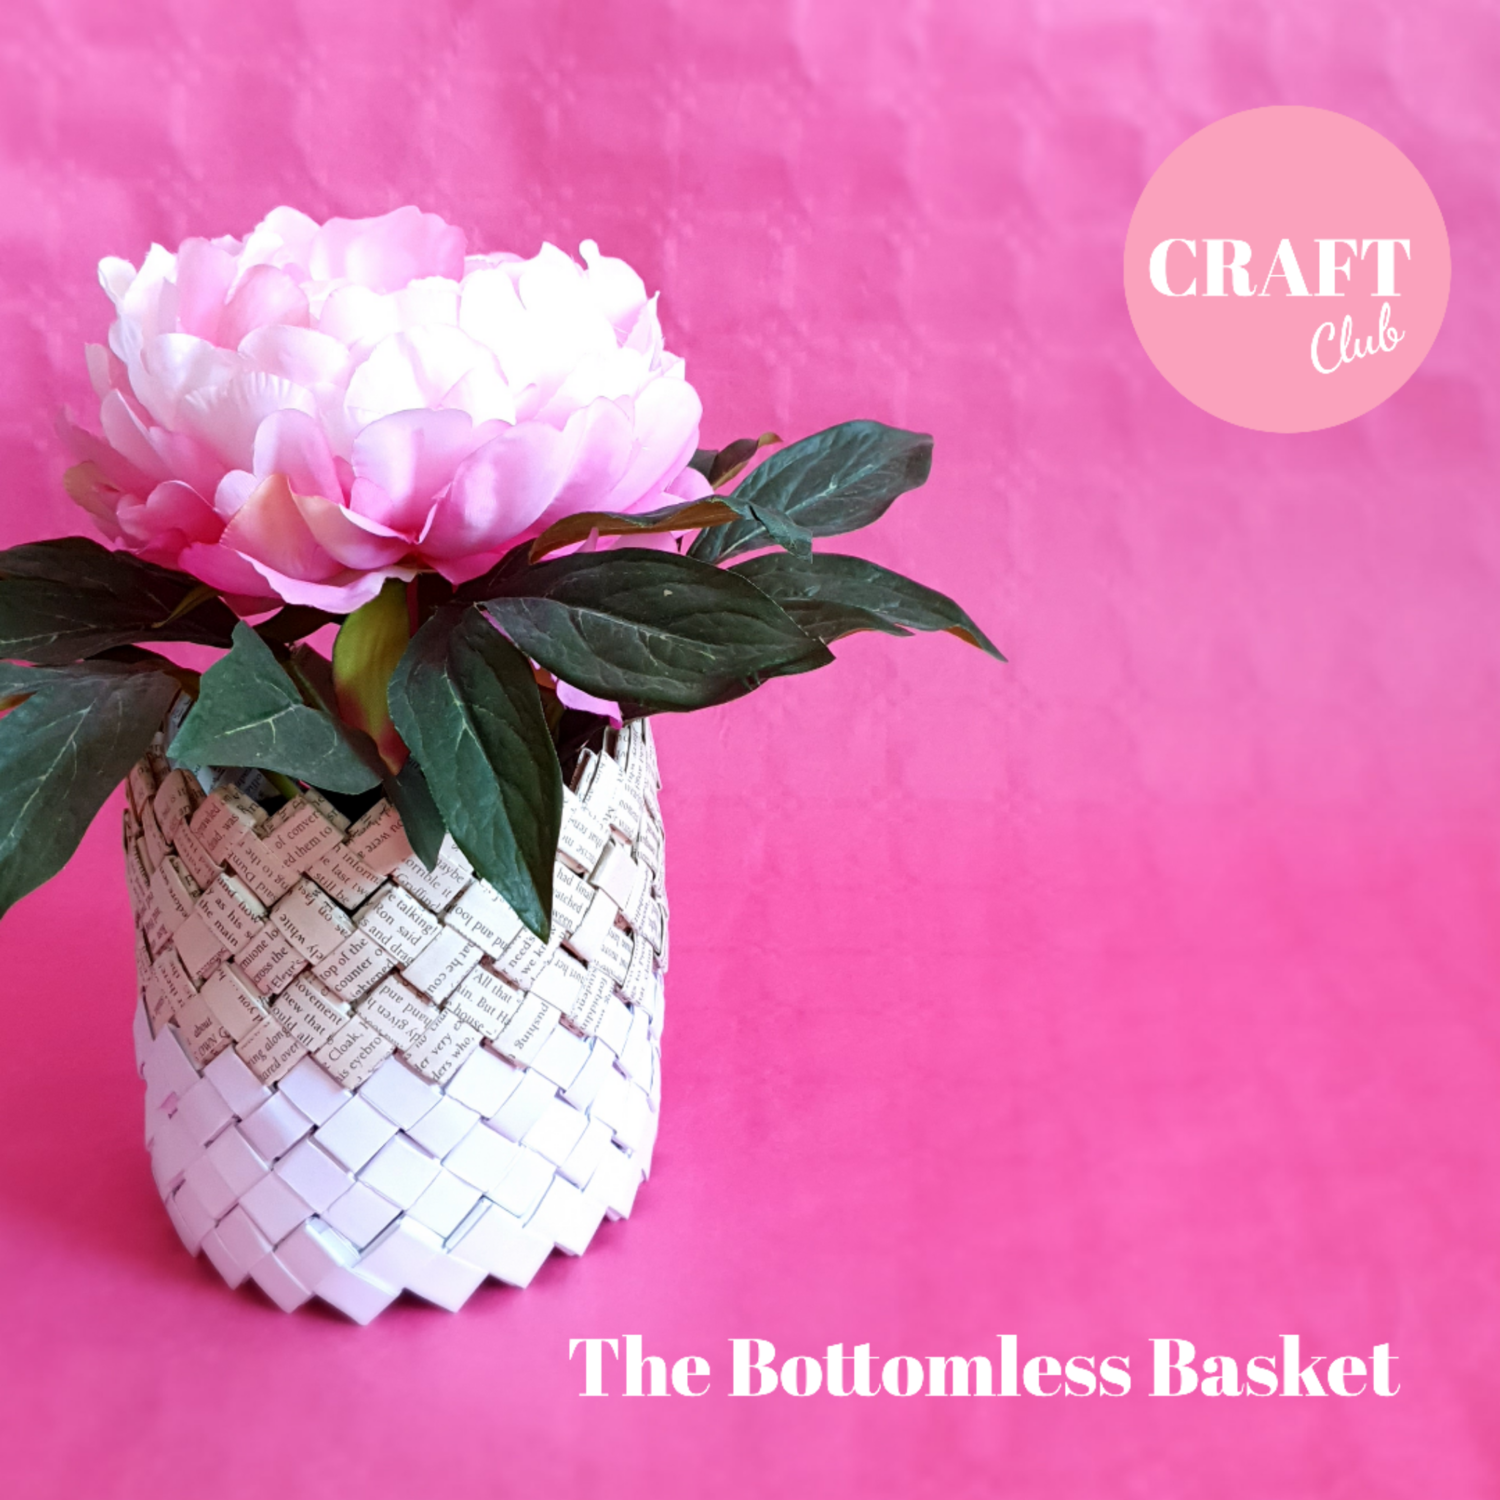 The Bottomless Basket - MAY CRAFT CLUB - free UK postage